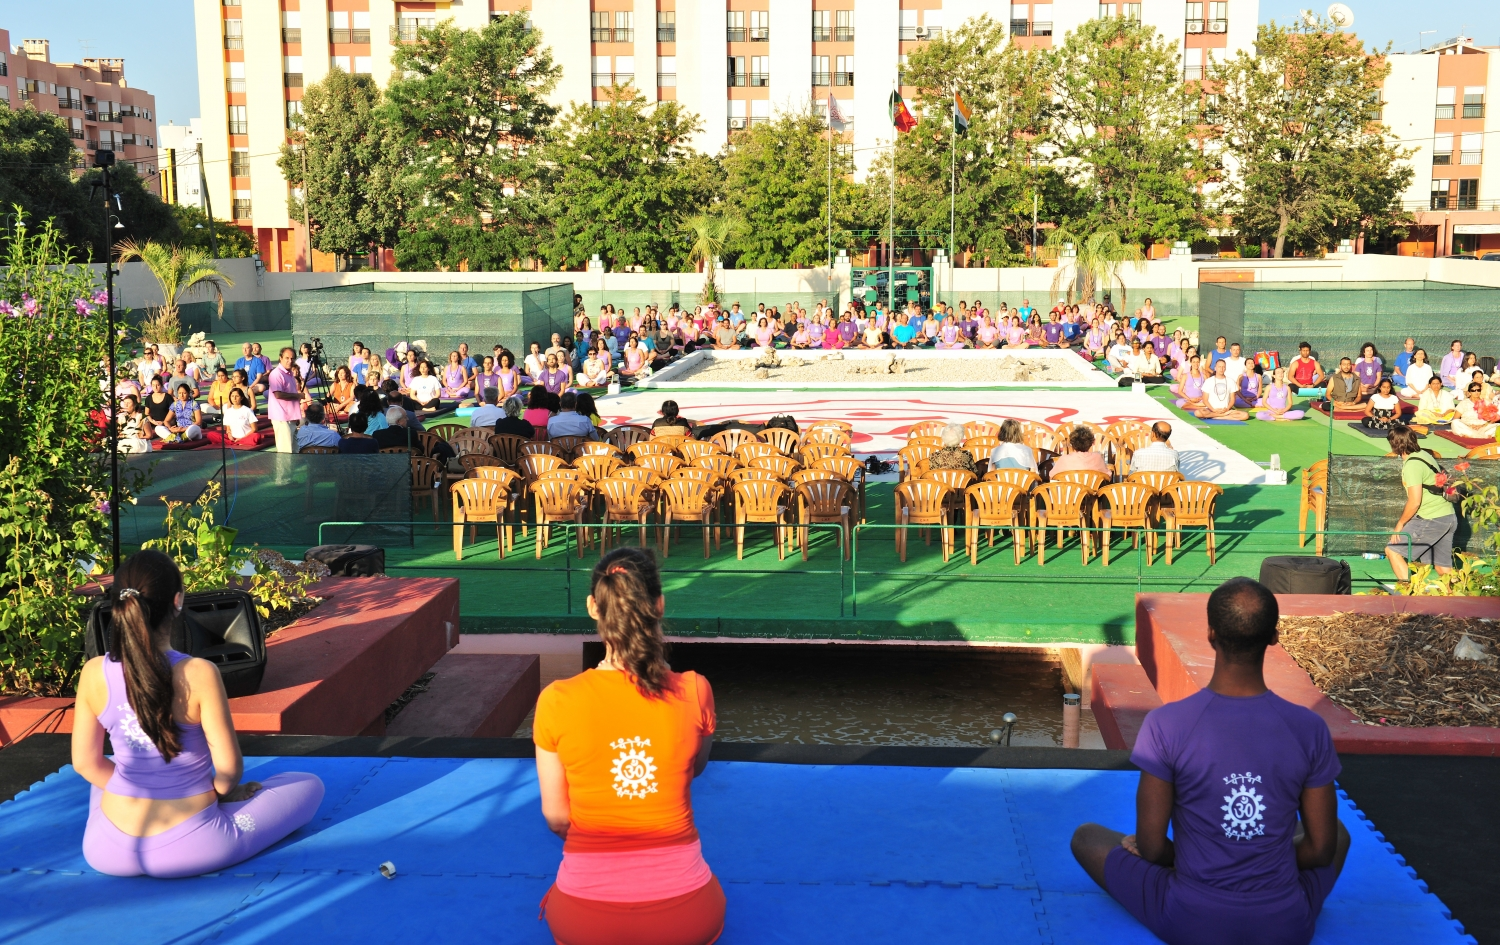 Conmemoración del International Day of Yoga - IDY / Día Internacional del Yoga - 2017 - Lisboa, Comunidad Hindú